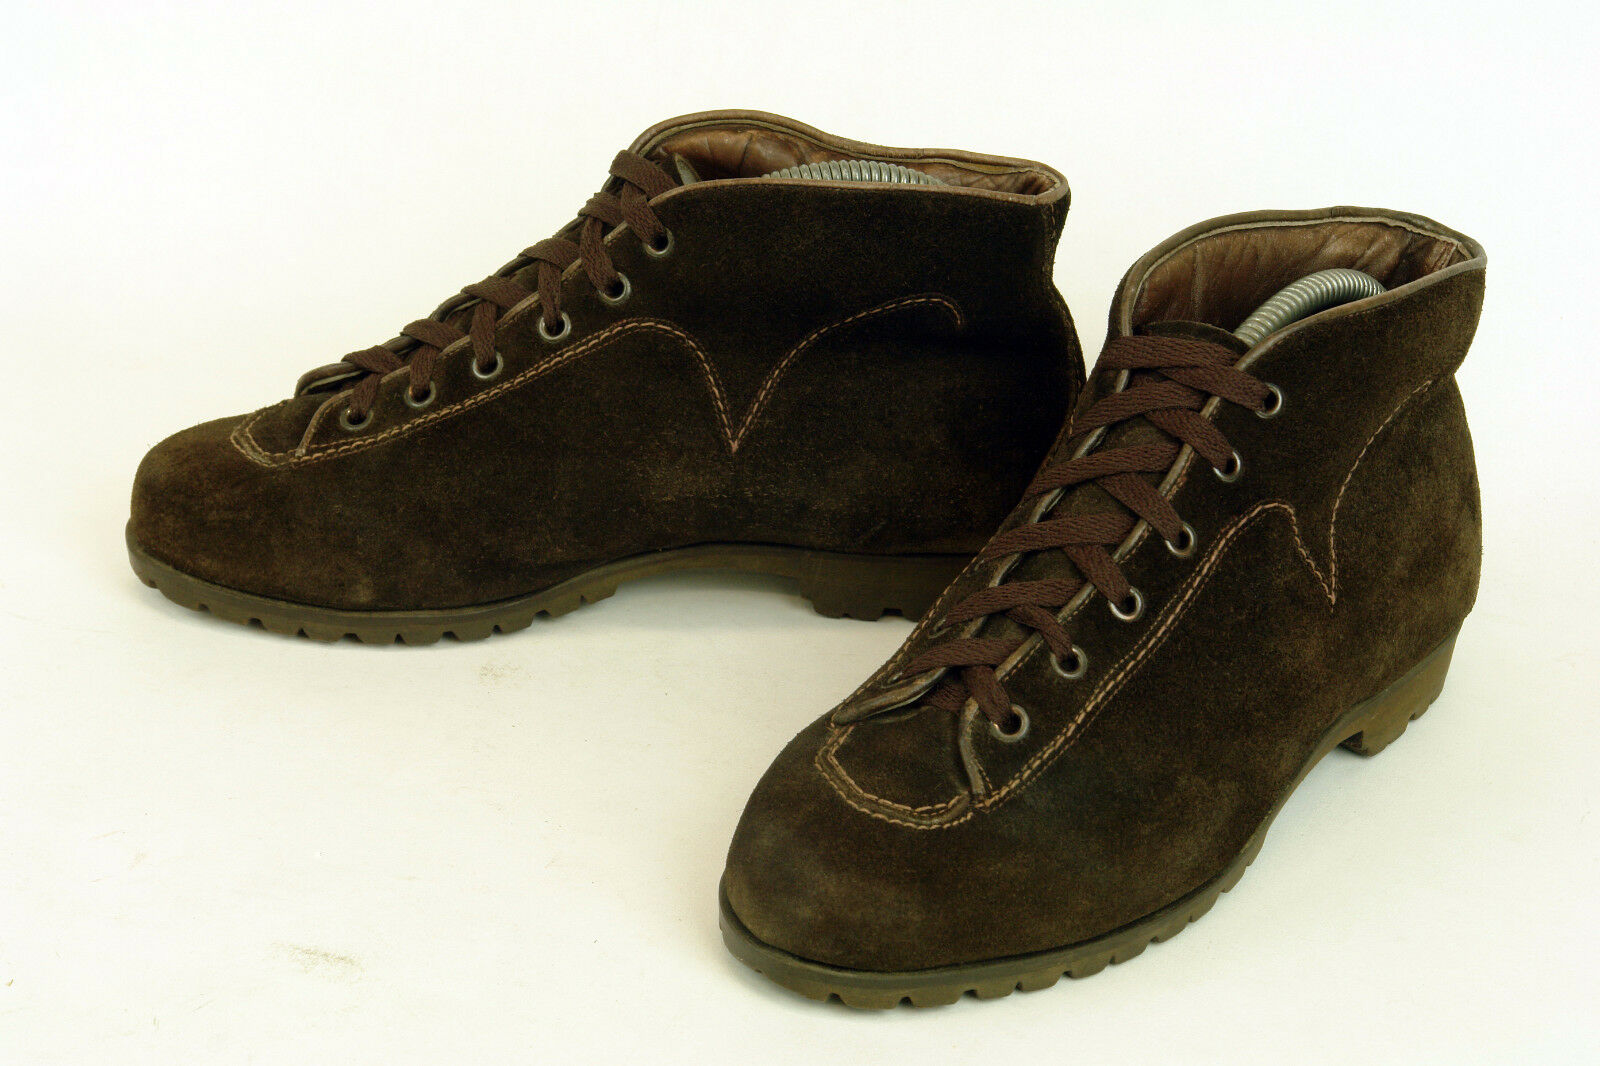 DUNHAM'S *  TYROLIANS * ITALY * DUNHAM'S HIKING BOOT IN BROWN SUEDE * 7 * EXCELLENT dc9097